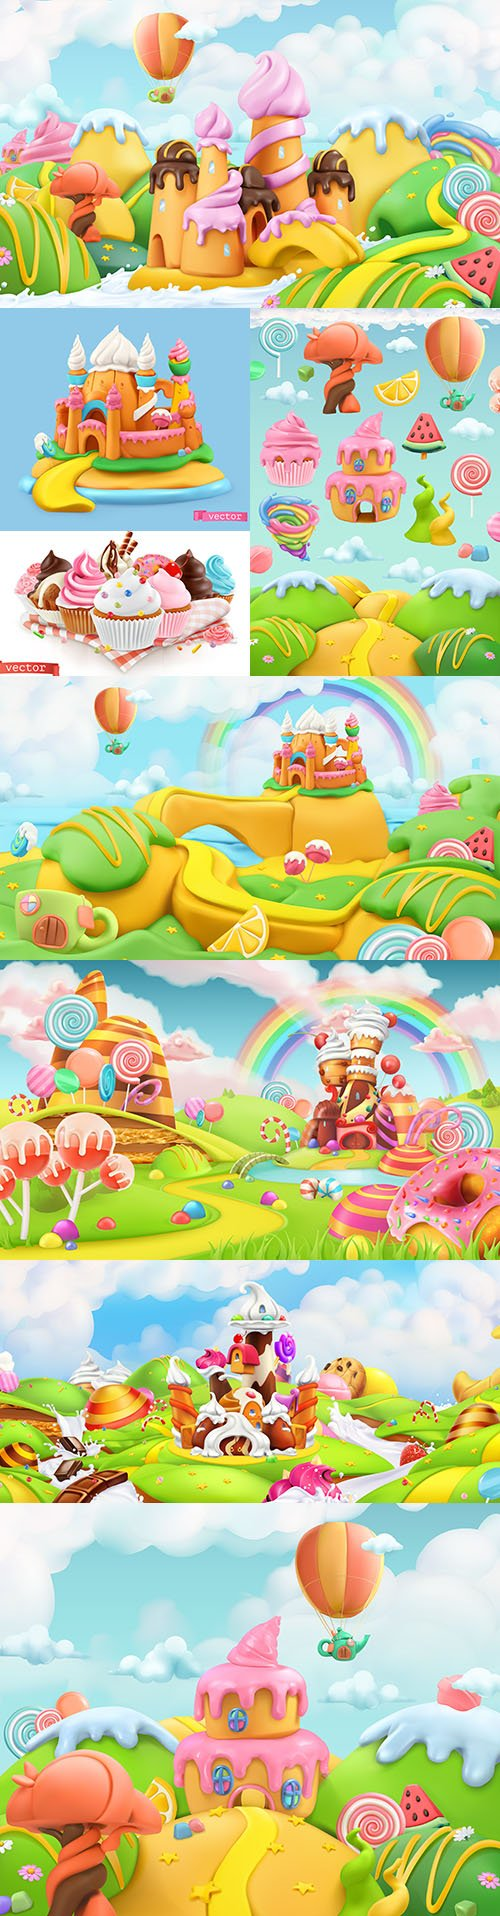 Sweet candy landscape of plasticine 3d realistic illustrations